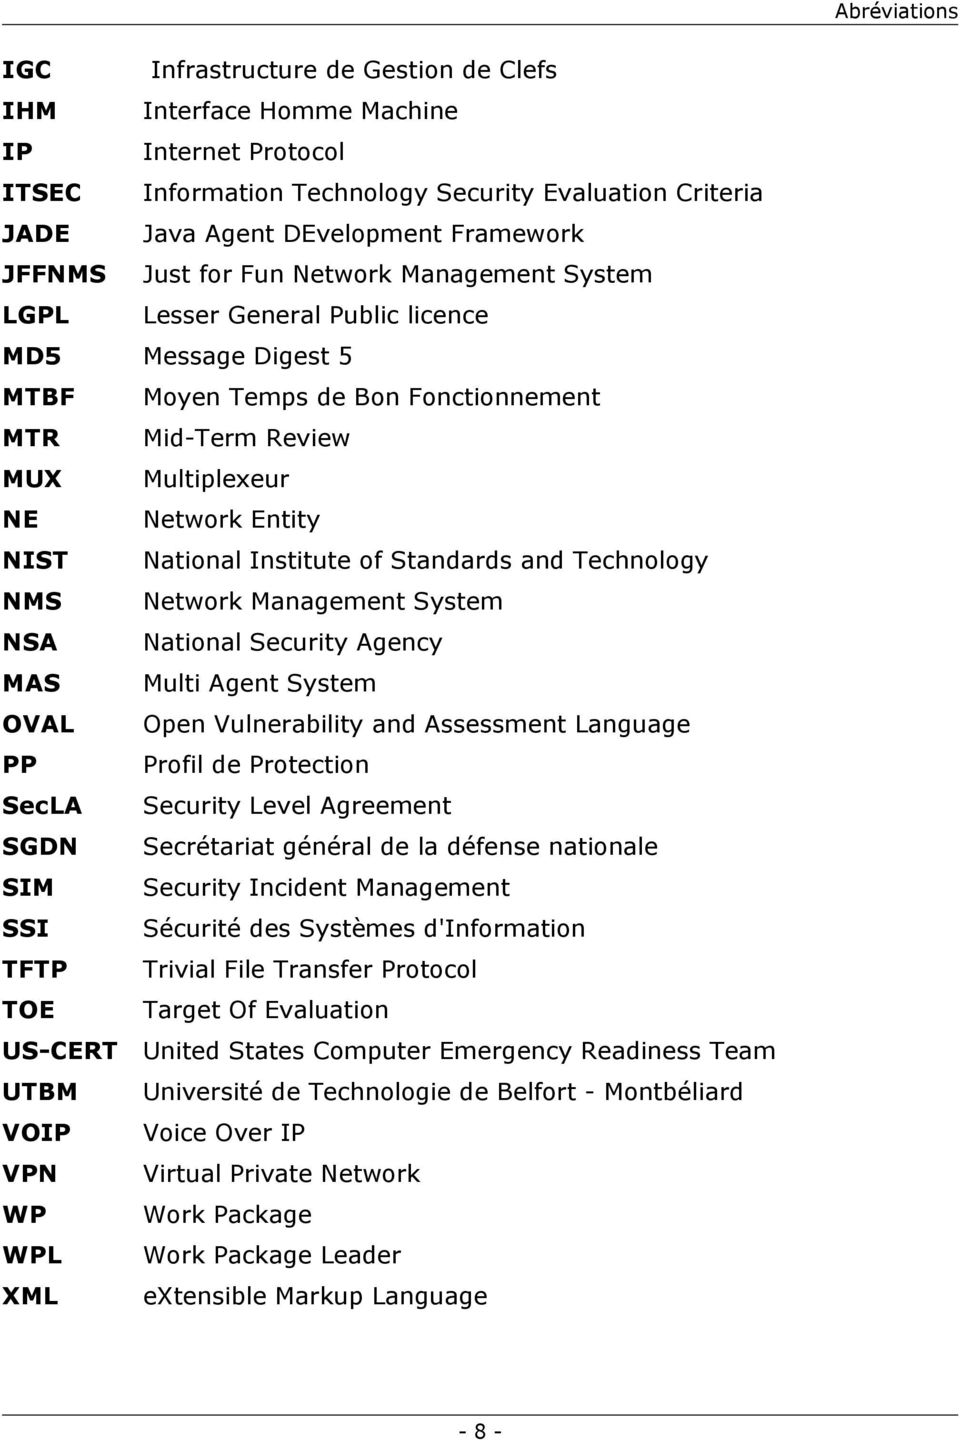 NIST National Institute of Standards and Technology NMS Network Management System NSA National Security Agency MAS Multi Agent System OVAL Open Vulnerability and Assessment Language PP Profil de